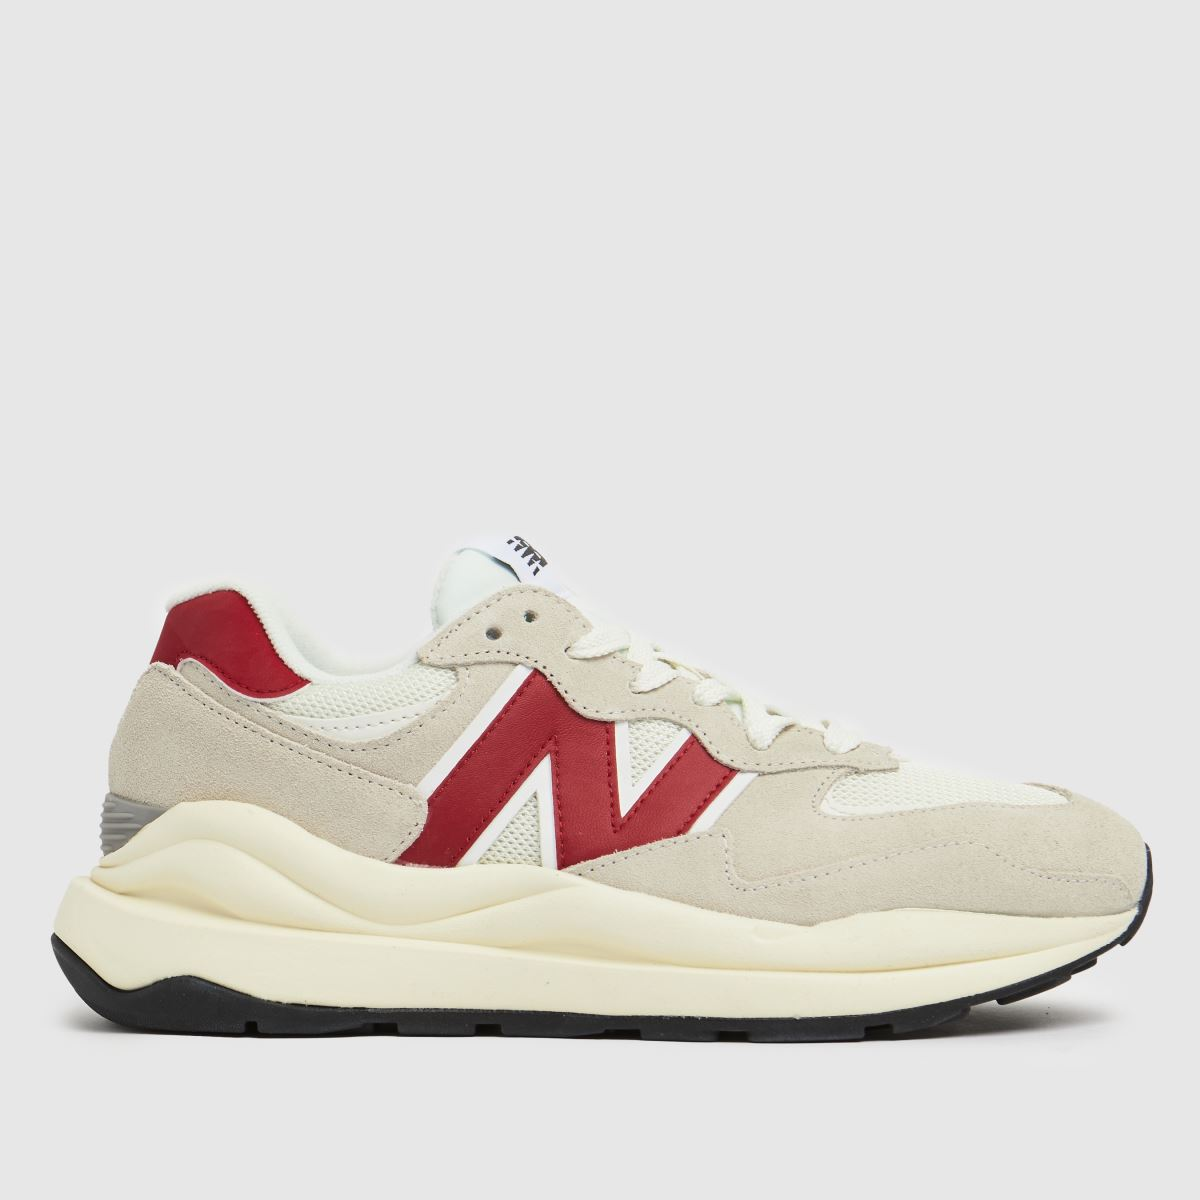 New Balance White & Red 57/40 Trainers